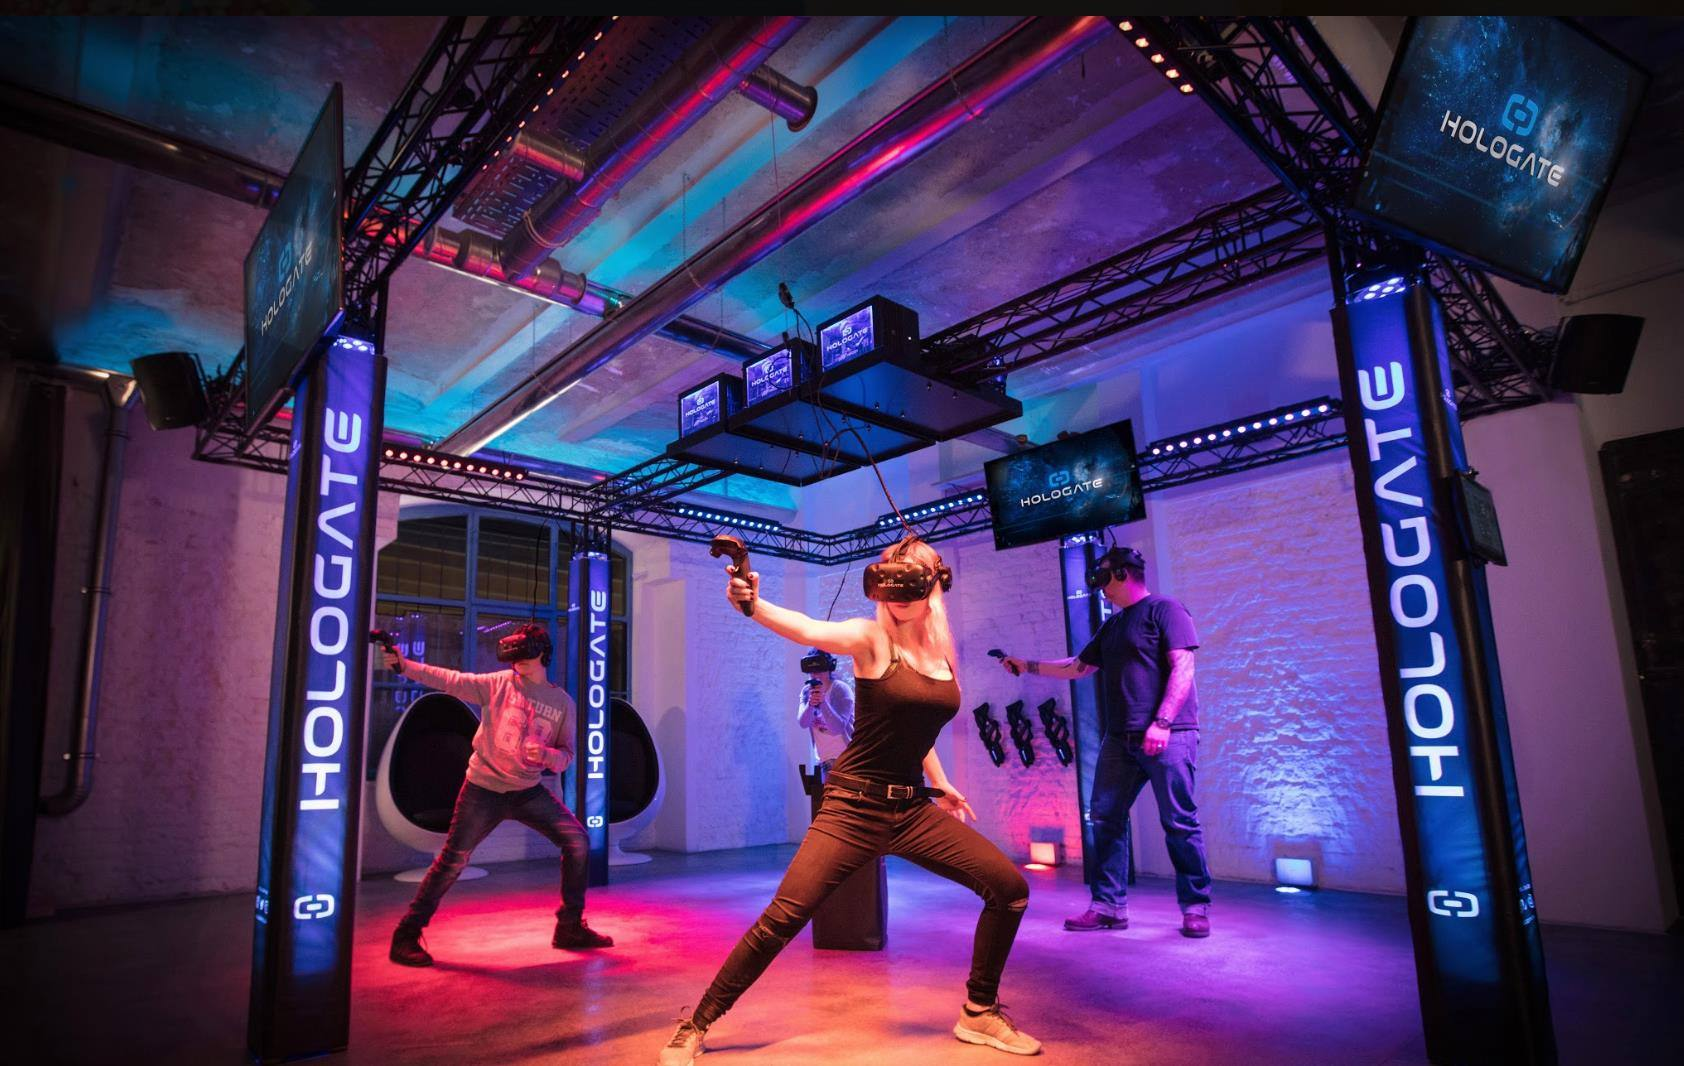 Hologate VR at Two Bit Circus in Downtown LA